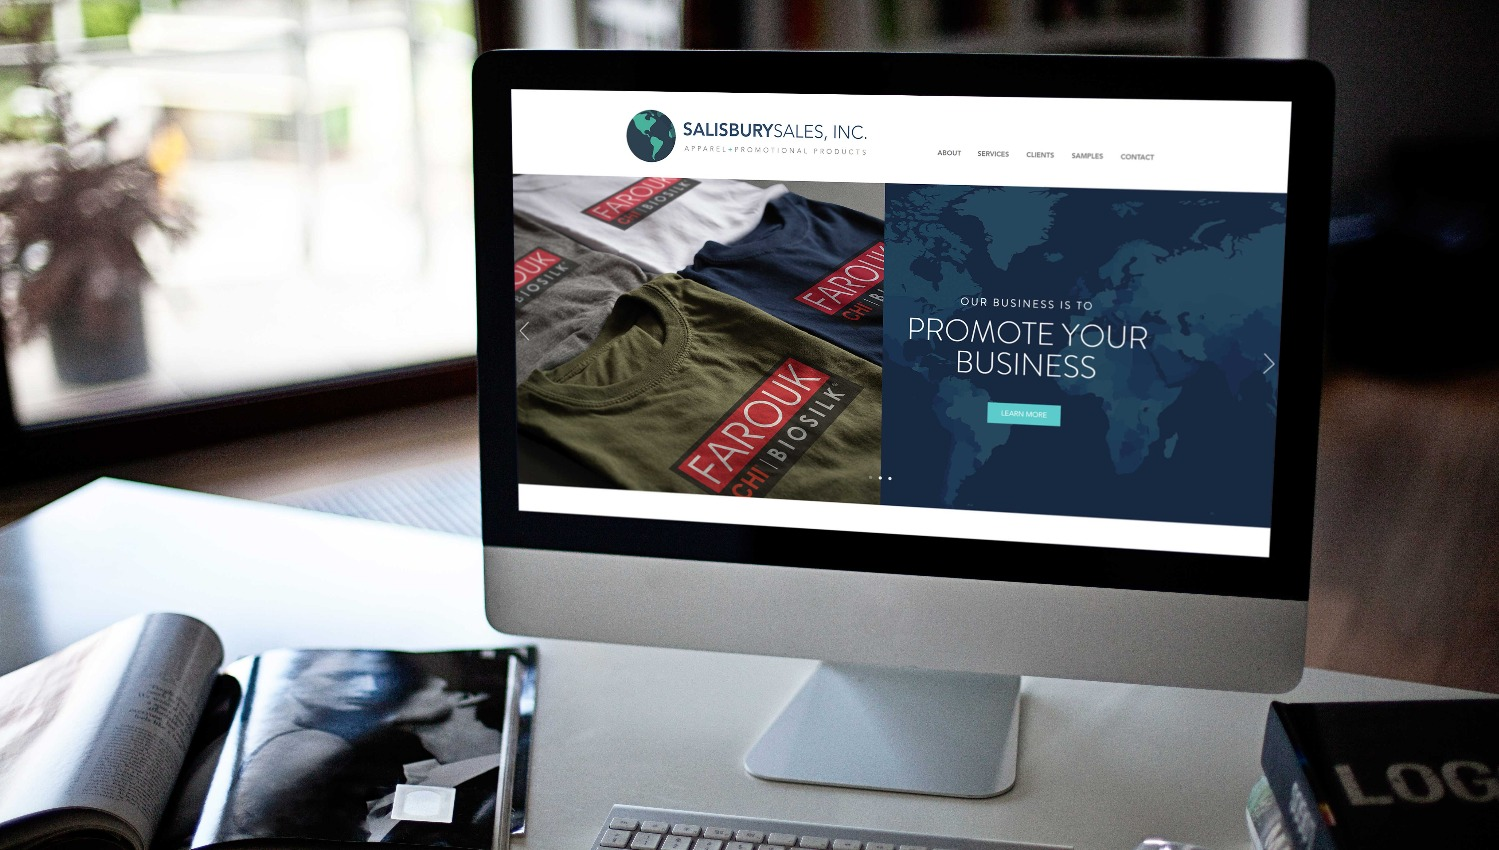 Sarah-Cas-Branding-and-Design-Website-Design-Salisbury-Sales-Apparel_edited